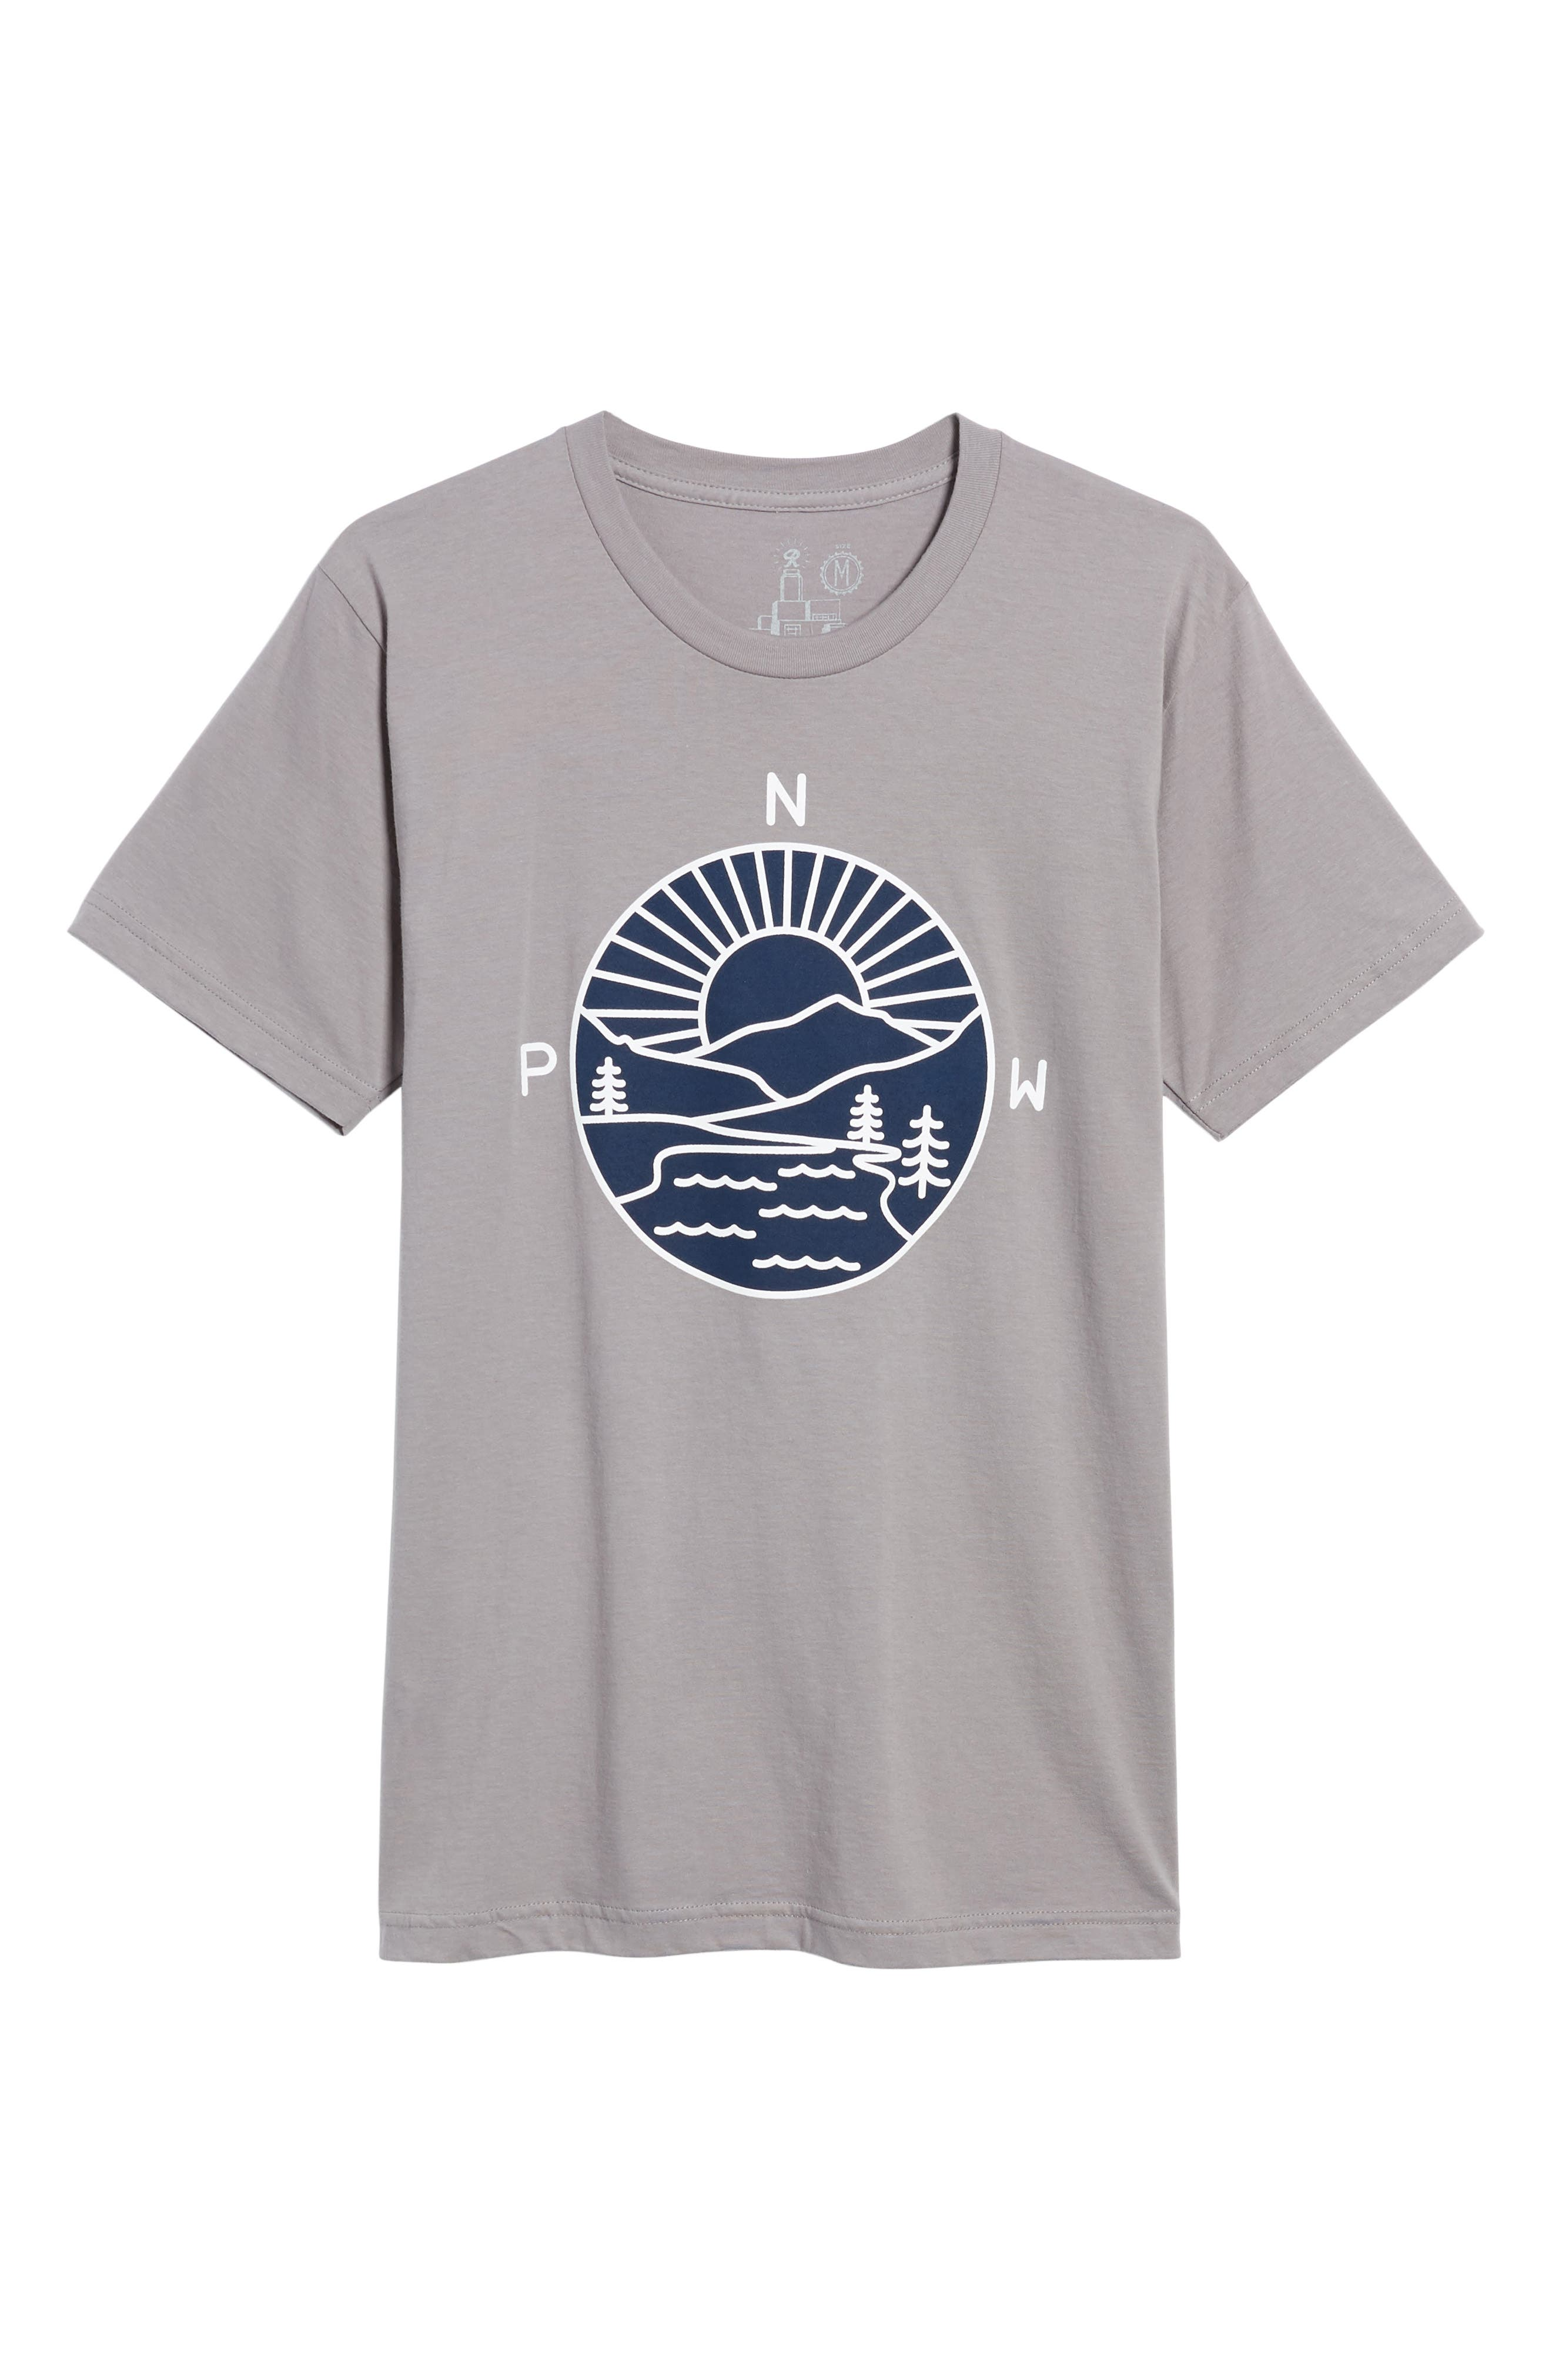 PNW Explorer T-Shirt,                             Alternate thumbnail 6, color,                             020